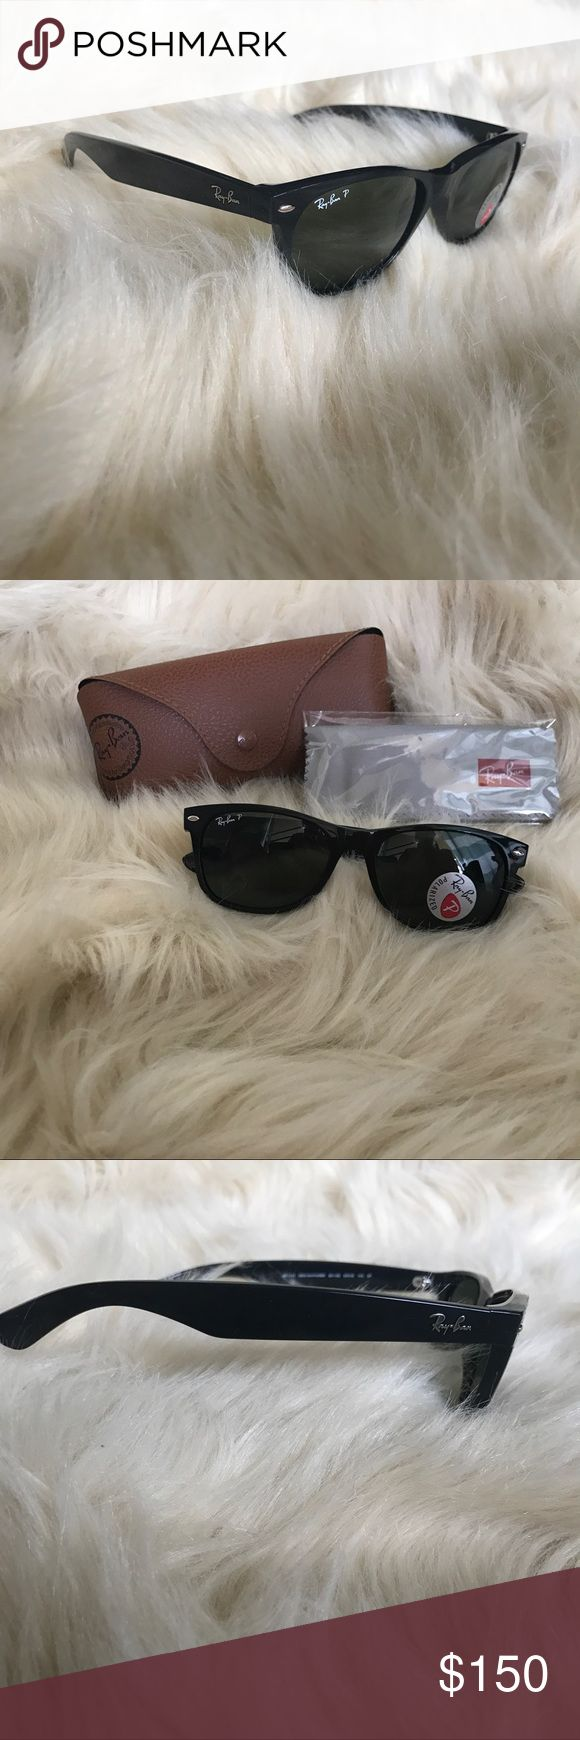 Ray-Ban original wayfarer POLARIZED! NWT! 55mm The one and only! Classic Ray ban wayfarers, brand new! Polarized! Ray-Ban Accessories Sunglasses